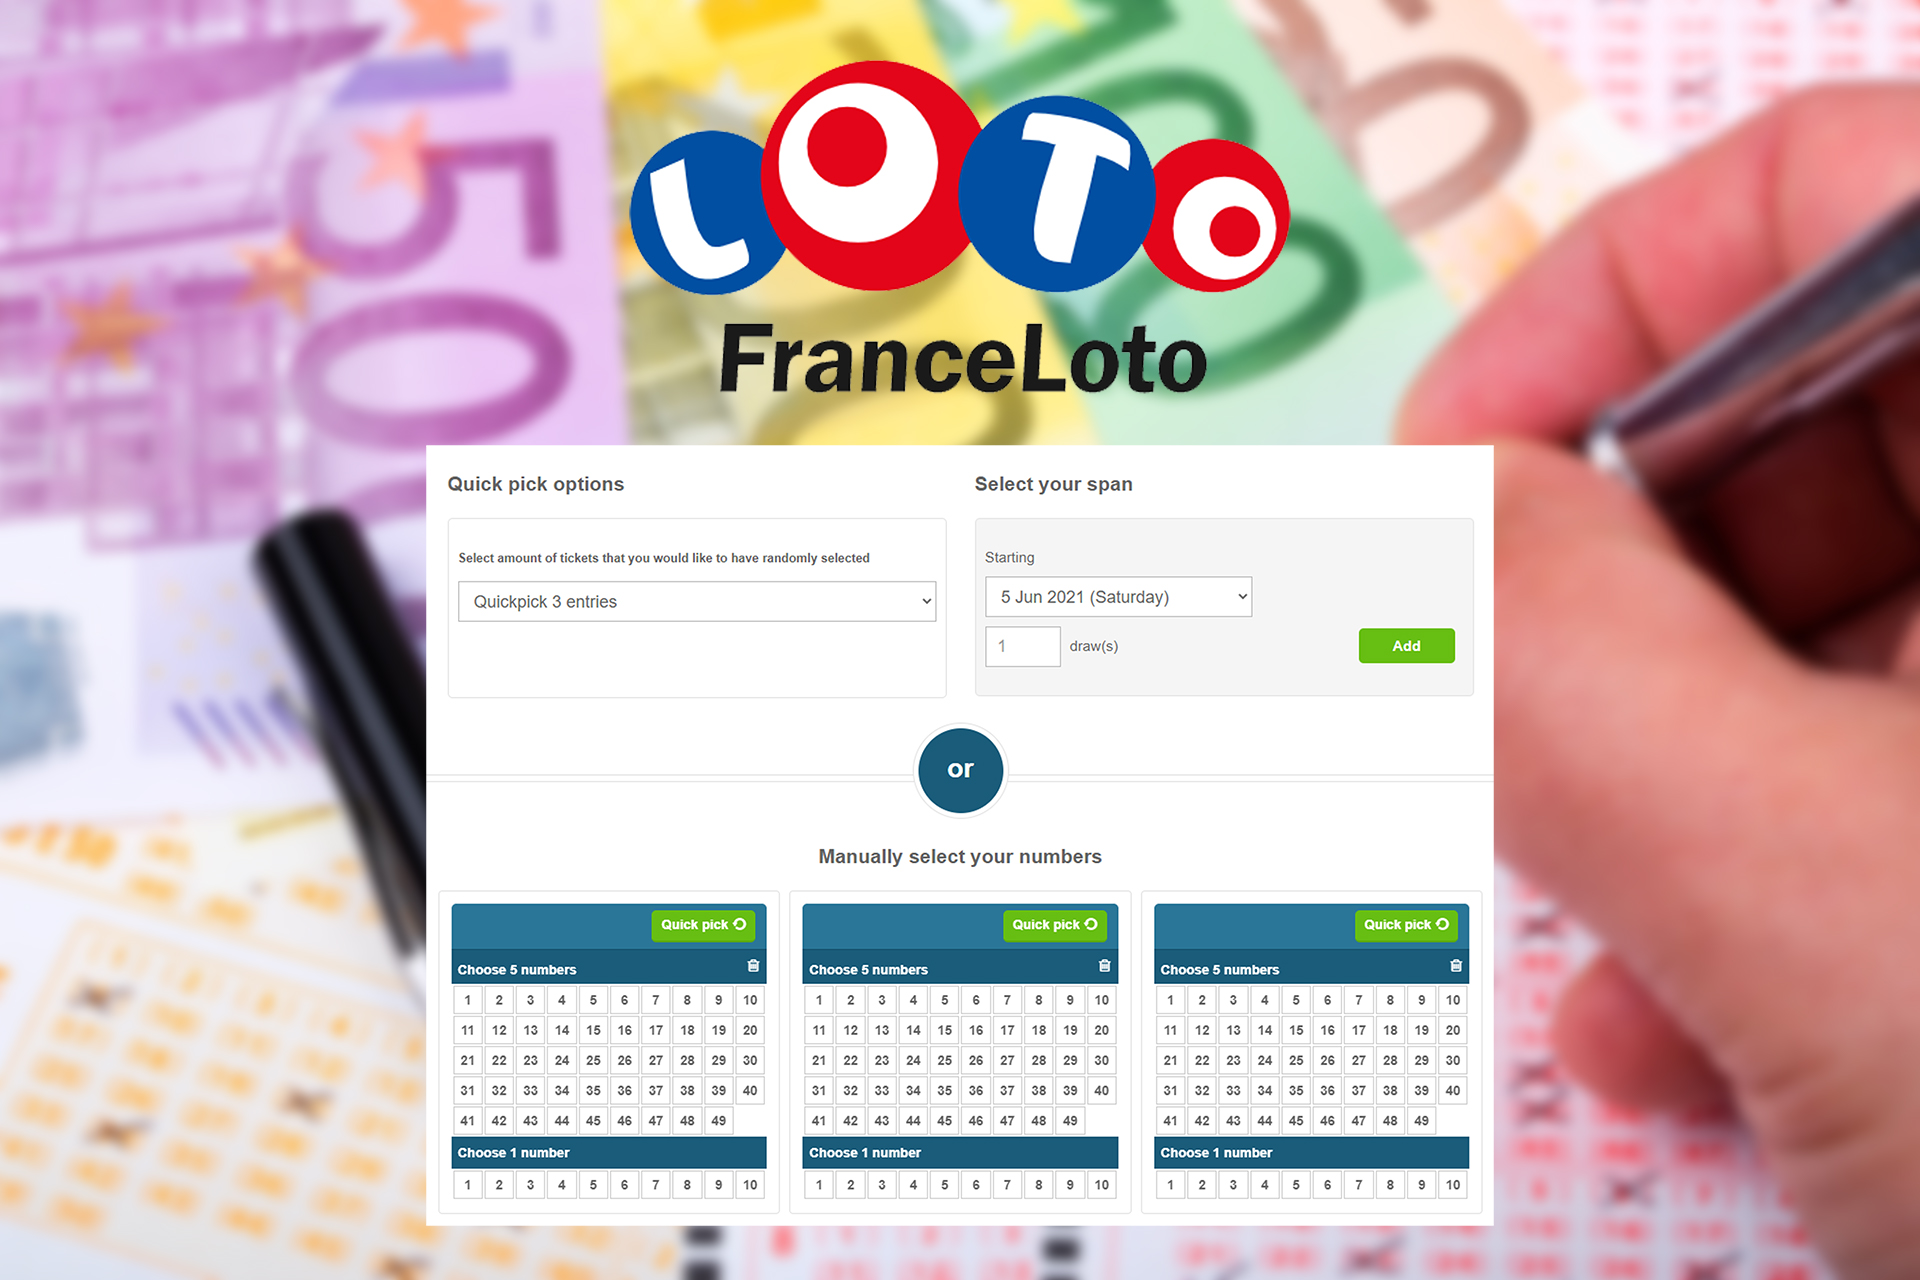 FranceLoto is a popular French lottery that provides jackpots in euros.